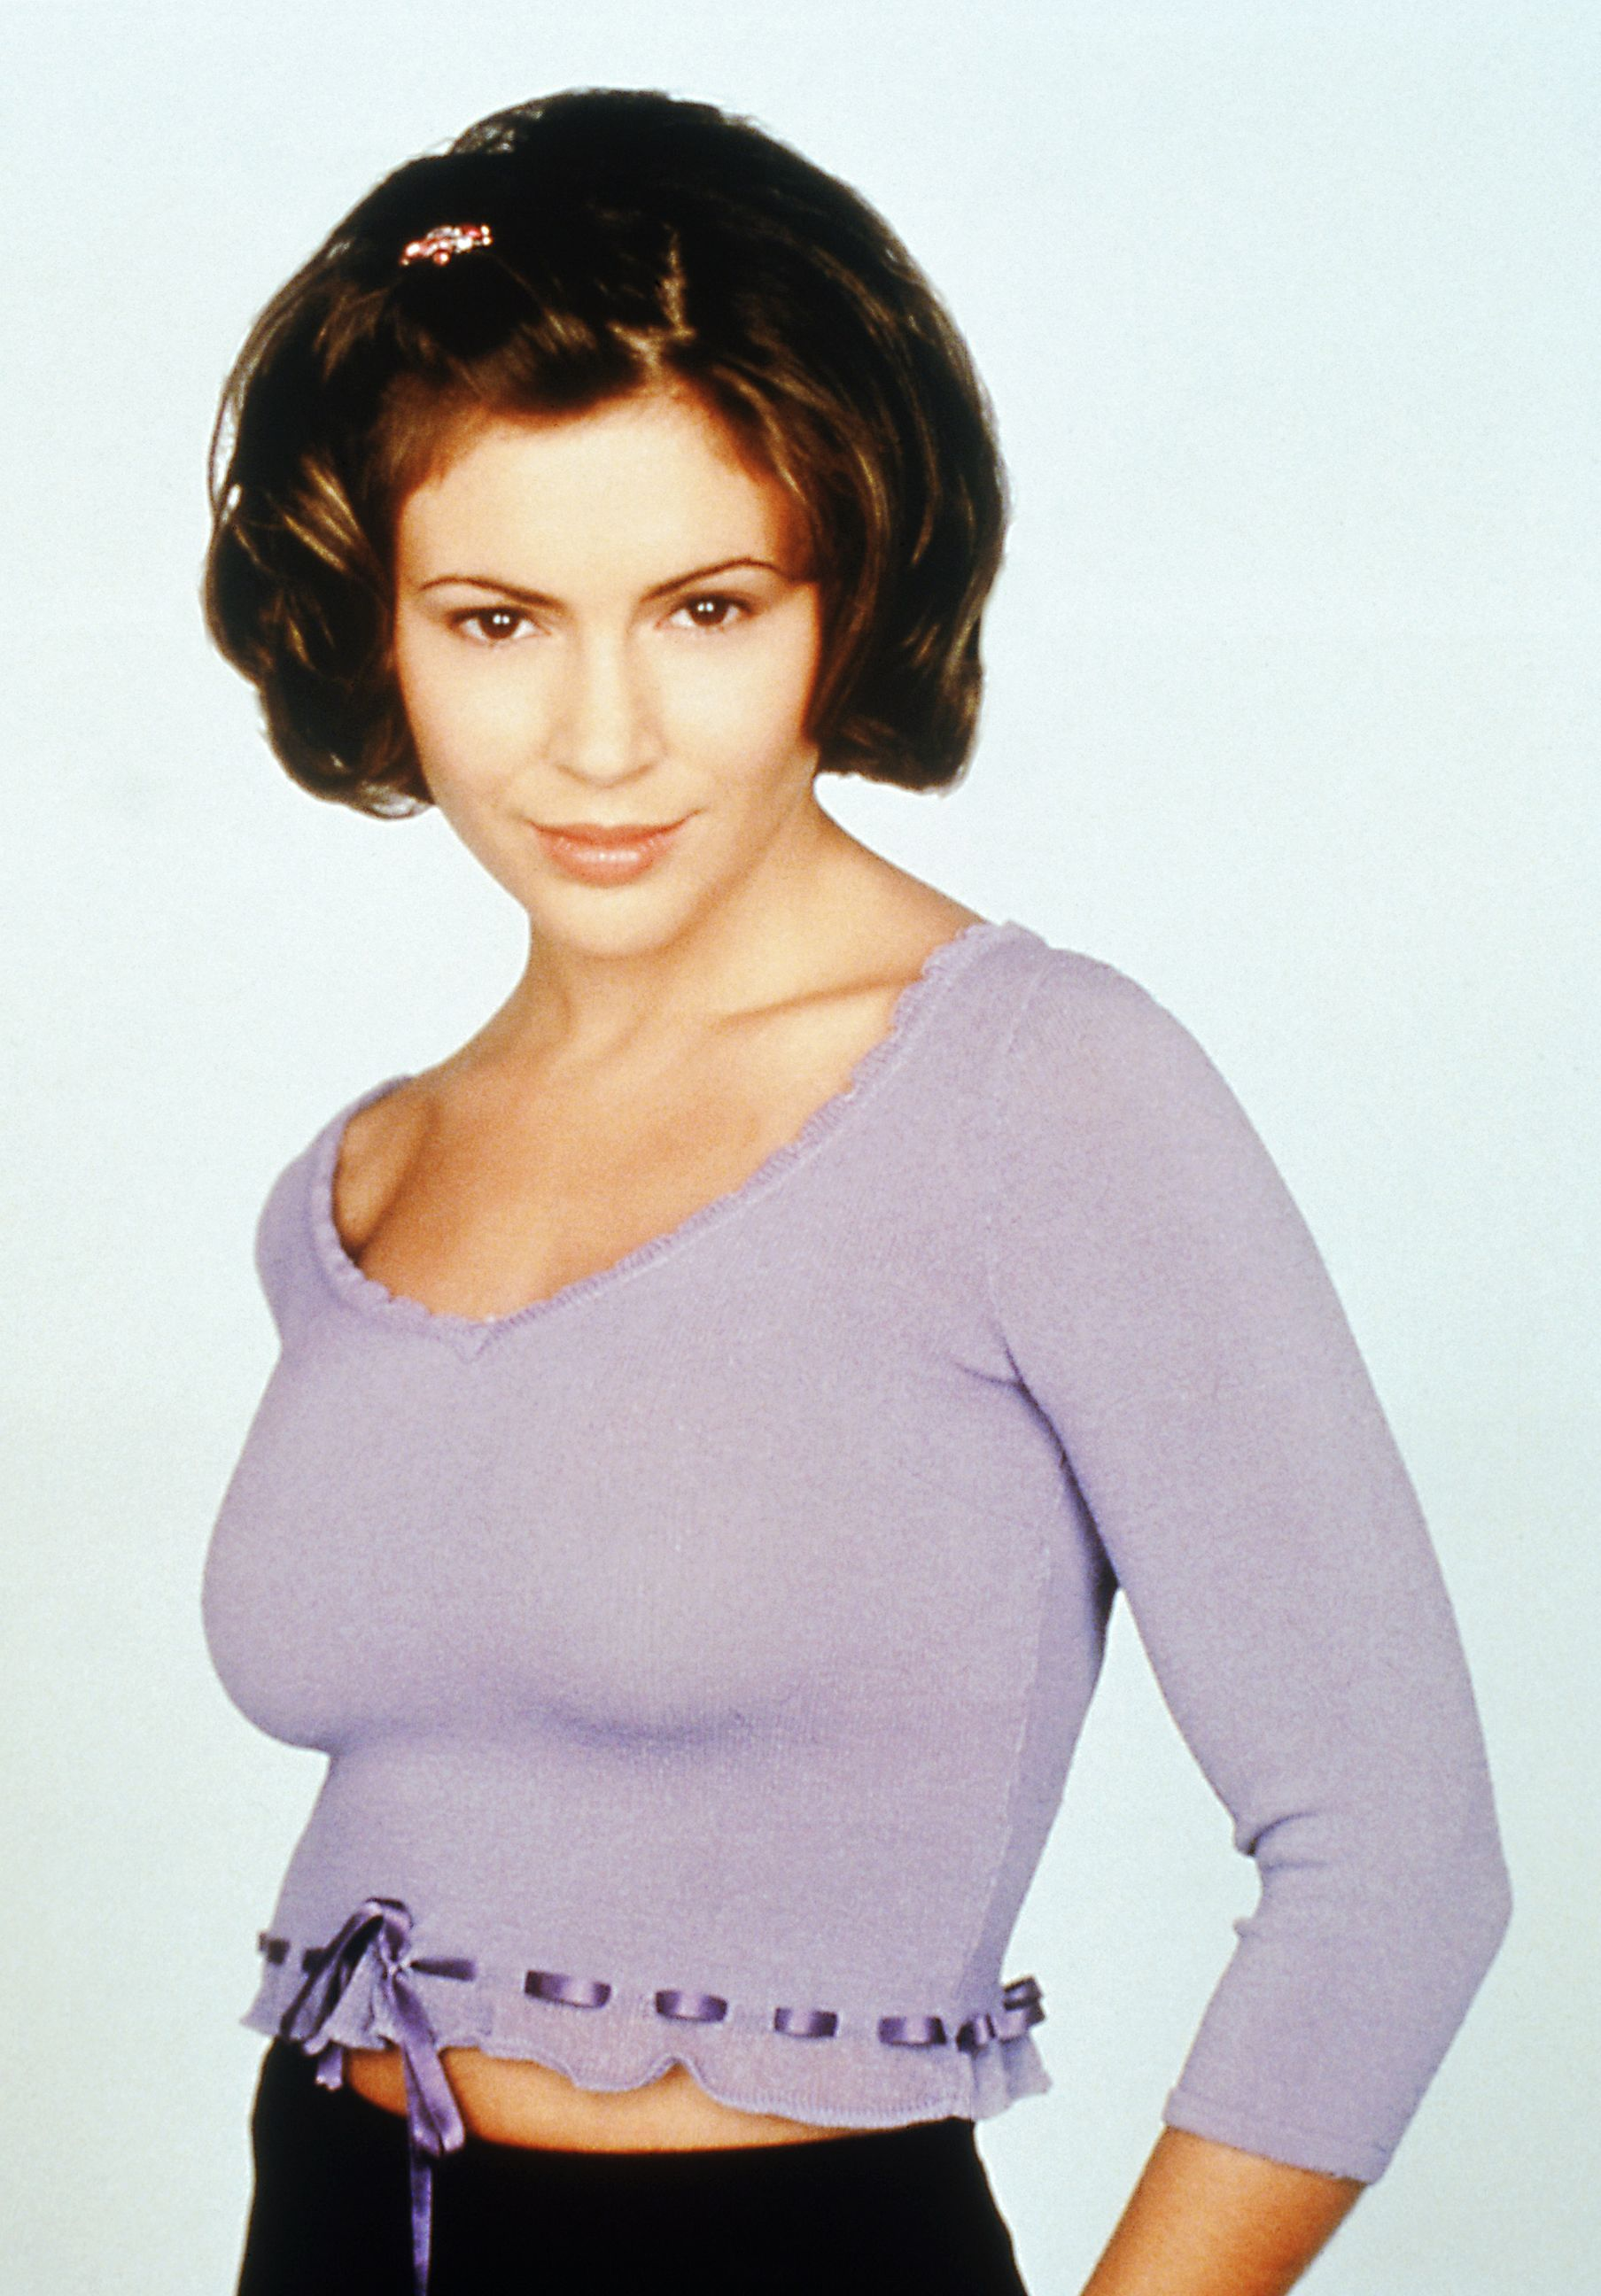 Alyssa milano charmed season 6 collection 3